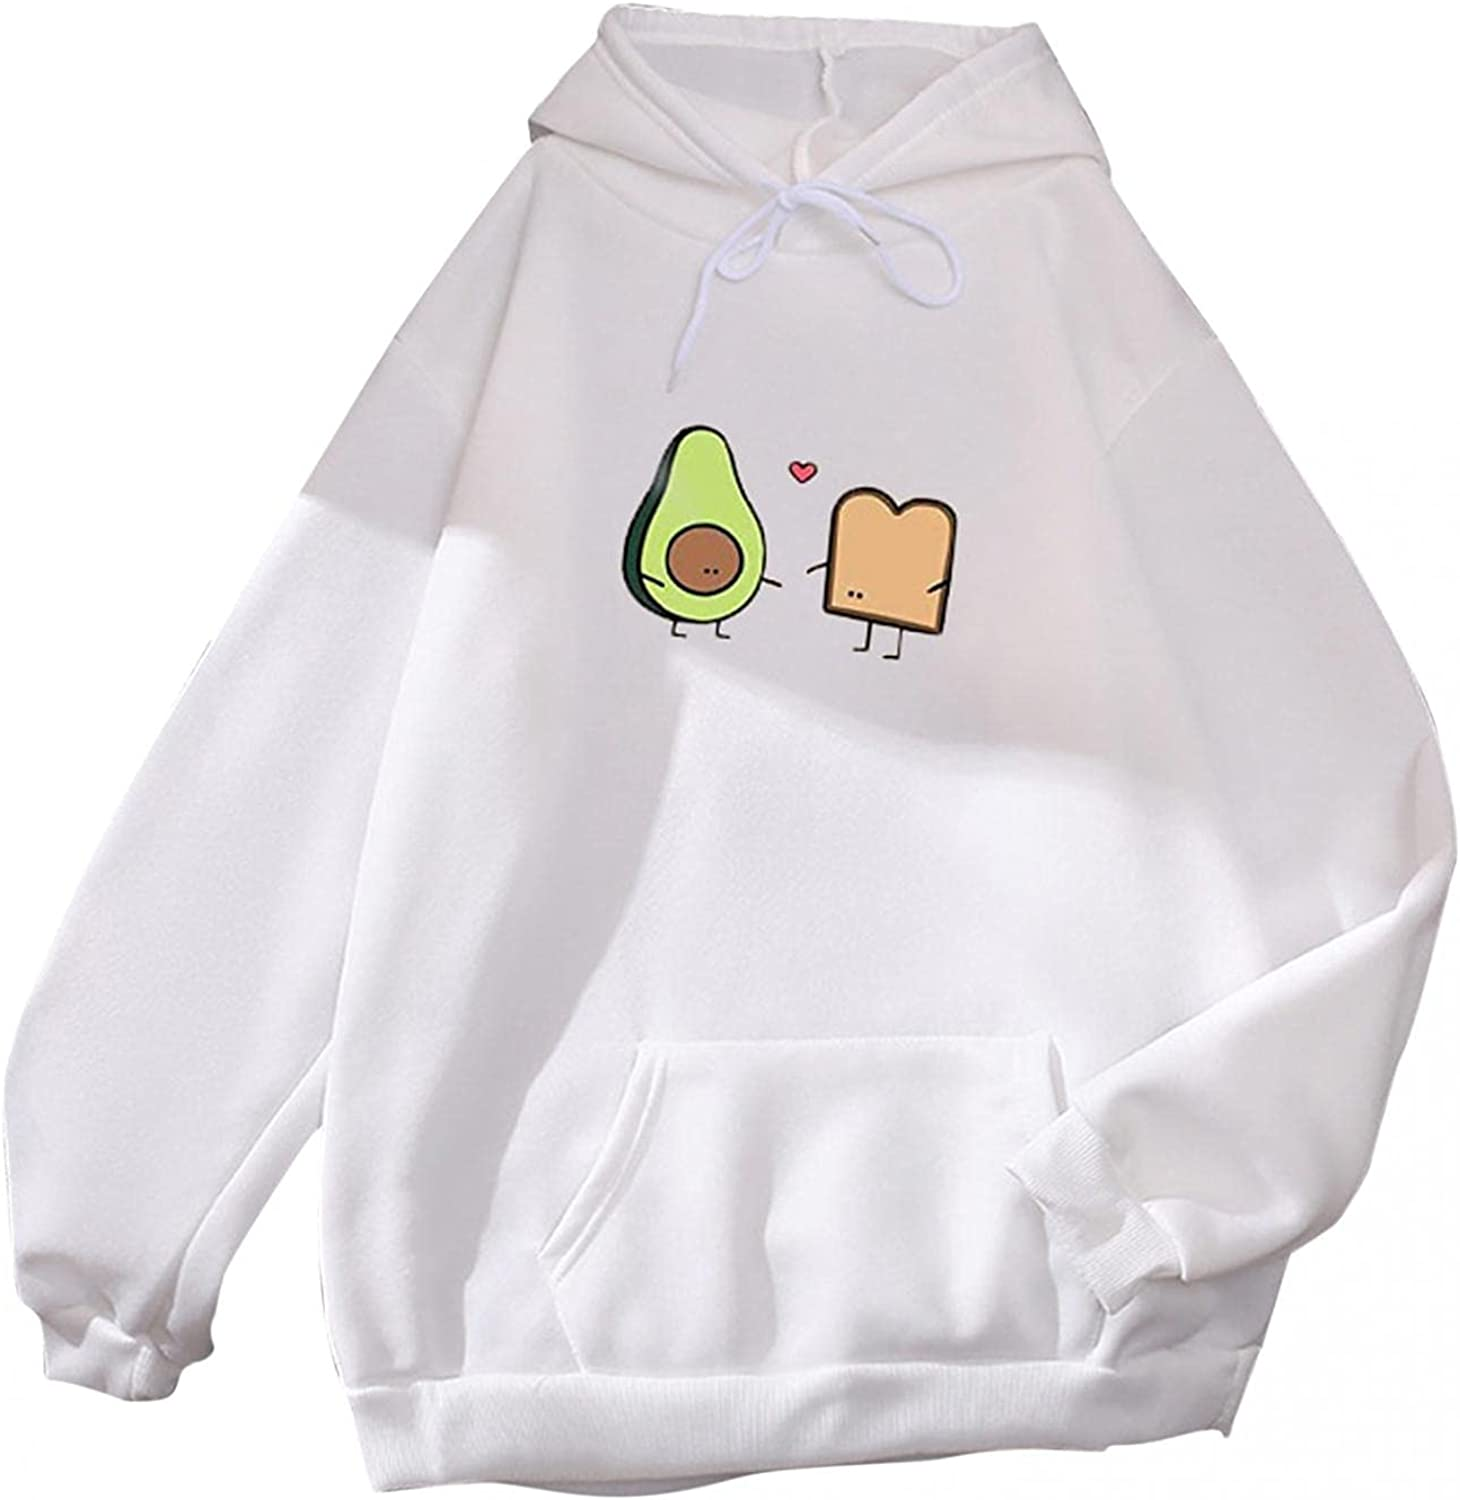 Gerichy Hoodies for Women, Women's Long Sleeve Drawstring Fall Hoodies Cute Plus Size Sweater Cool Hoodies with Pocket